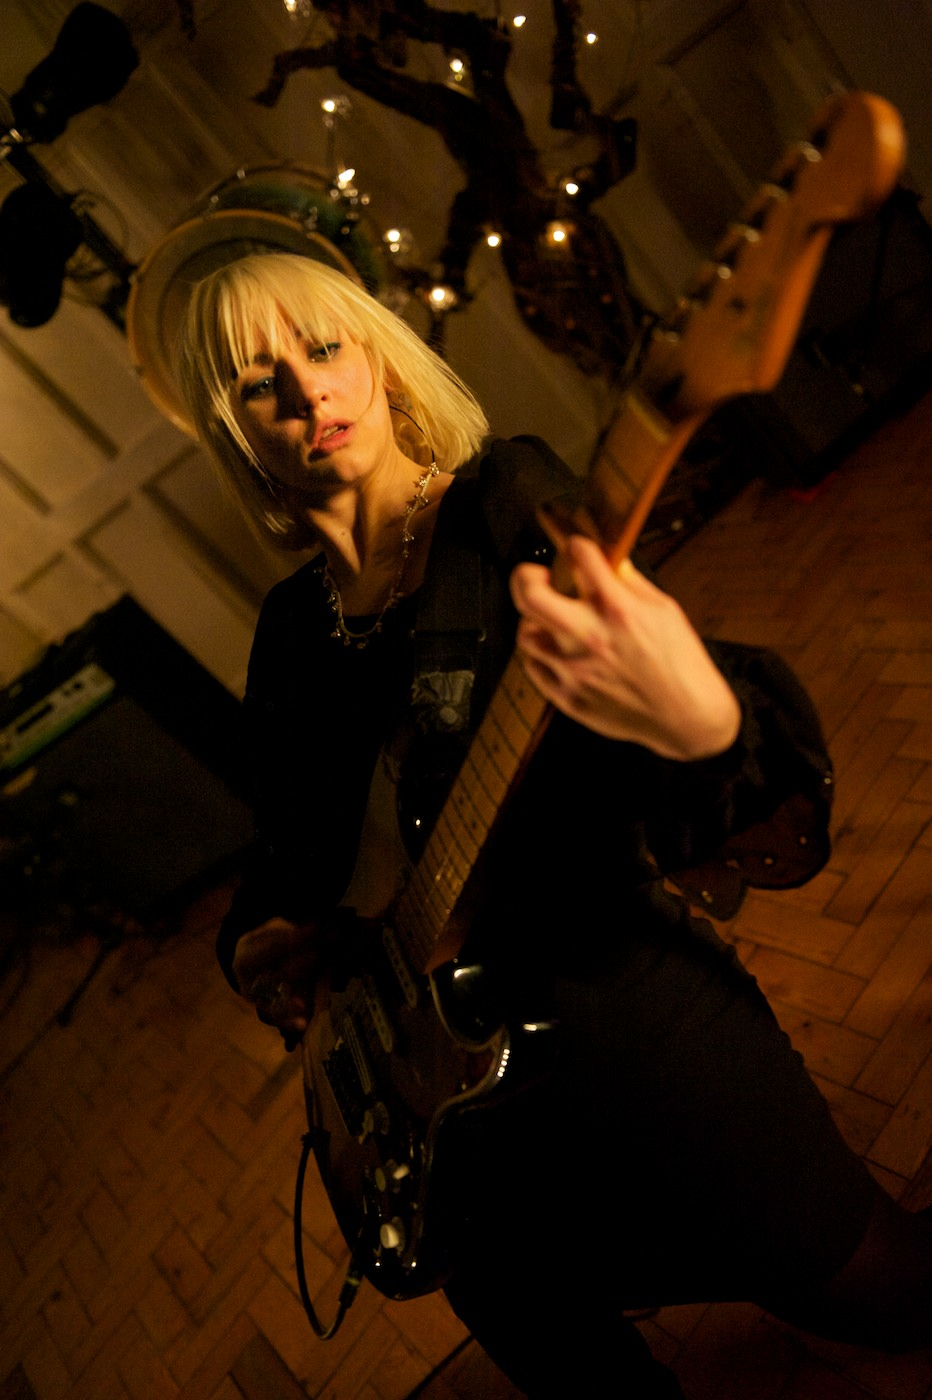 The Joy Formidable - St. Paul's Church, Cambridge 12/02/2011 | Photo by Valerio Berdini